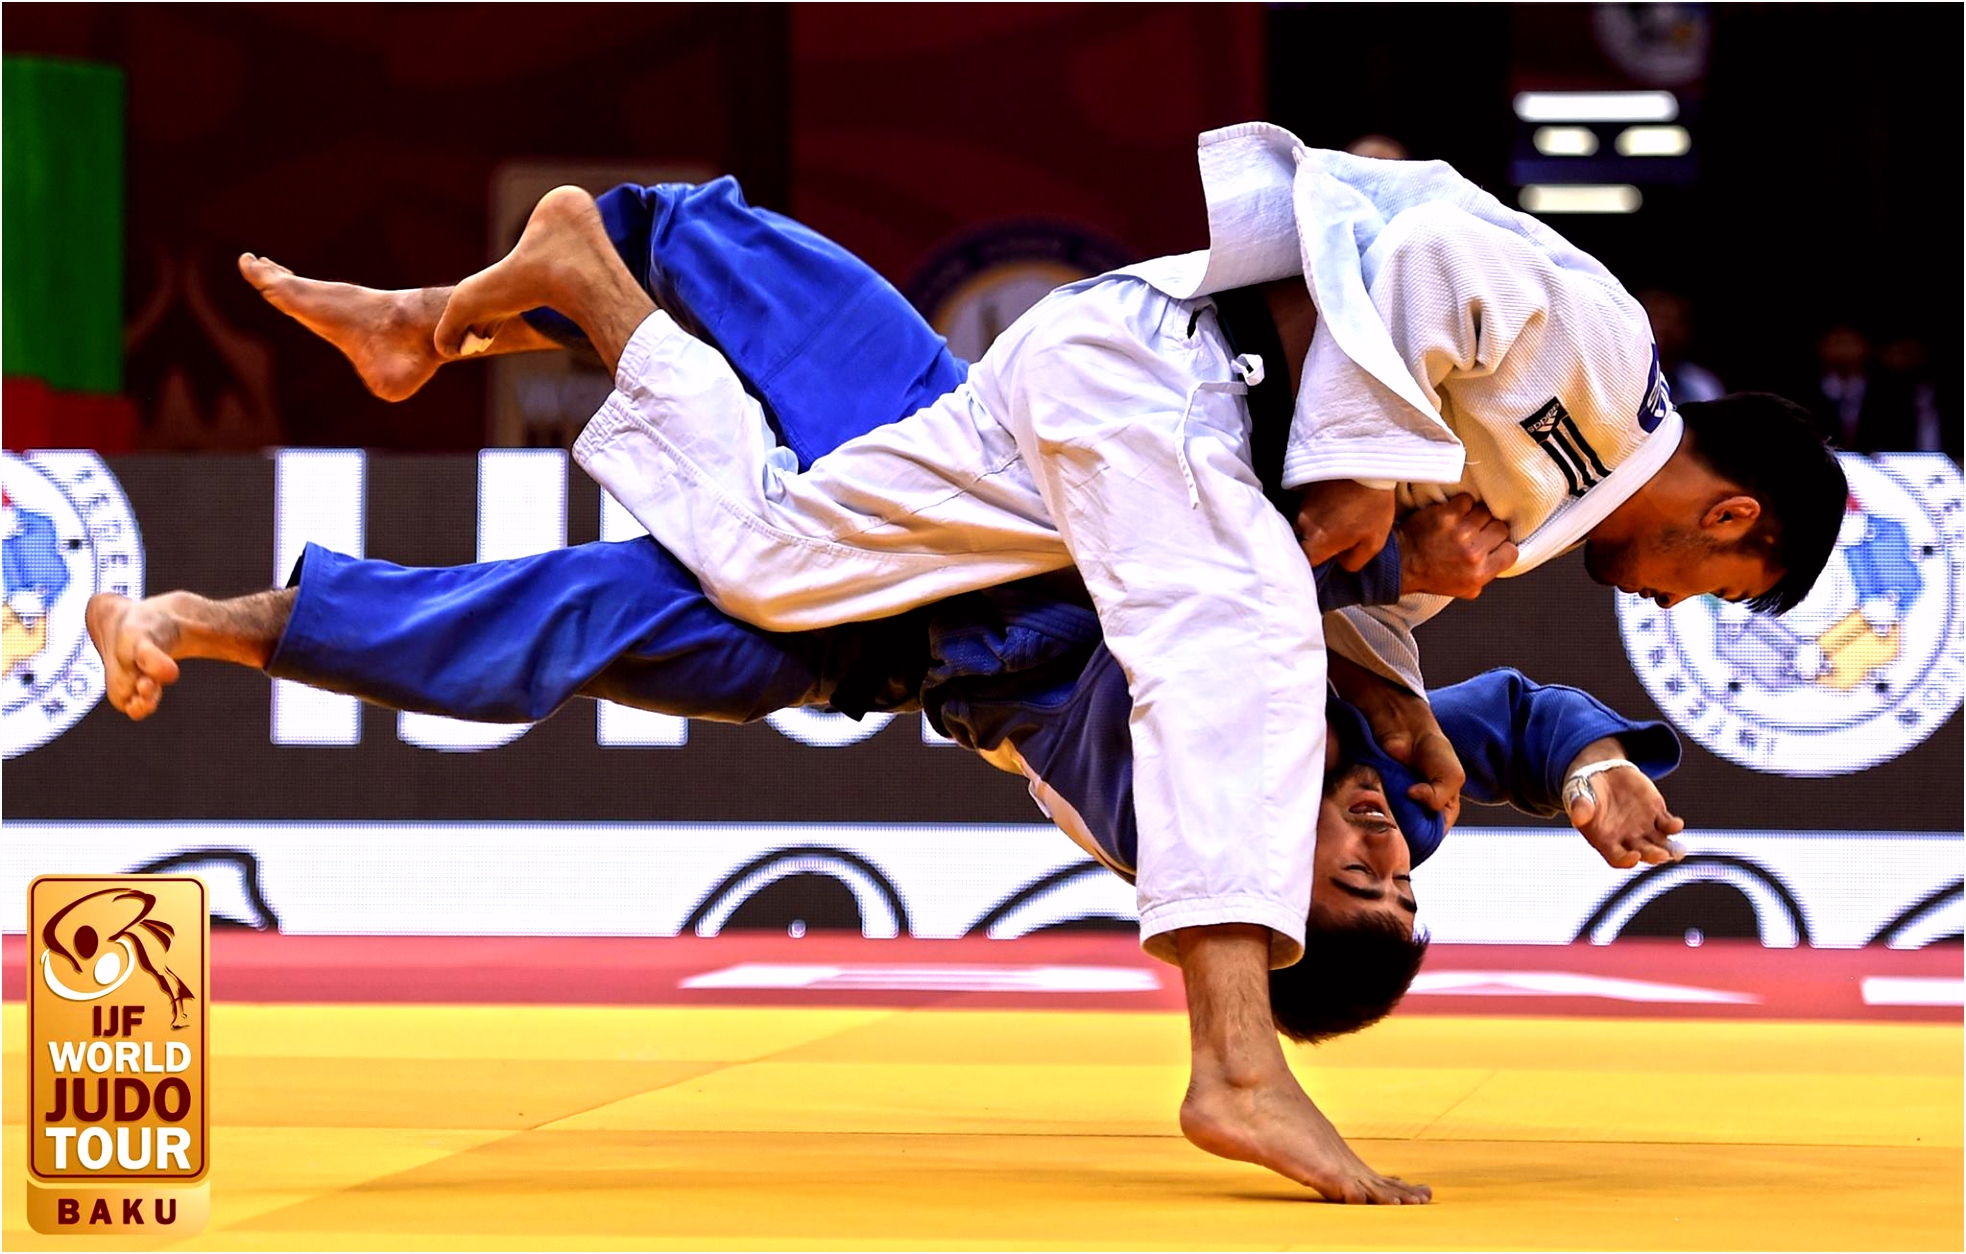 JudoInside News Field with daredevils U73kg will showcase top